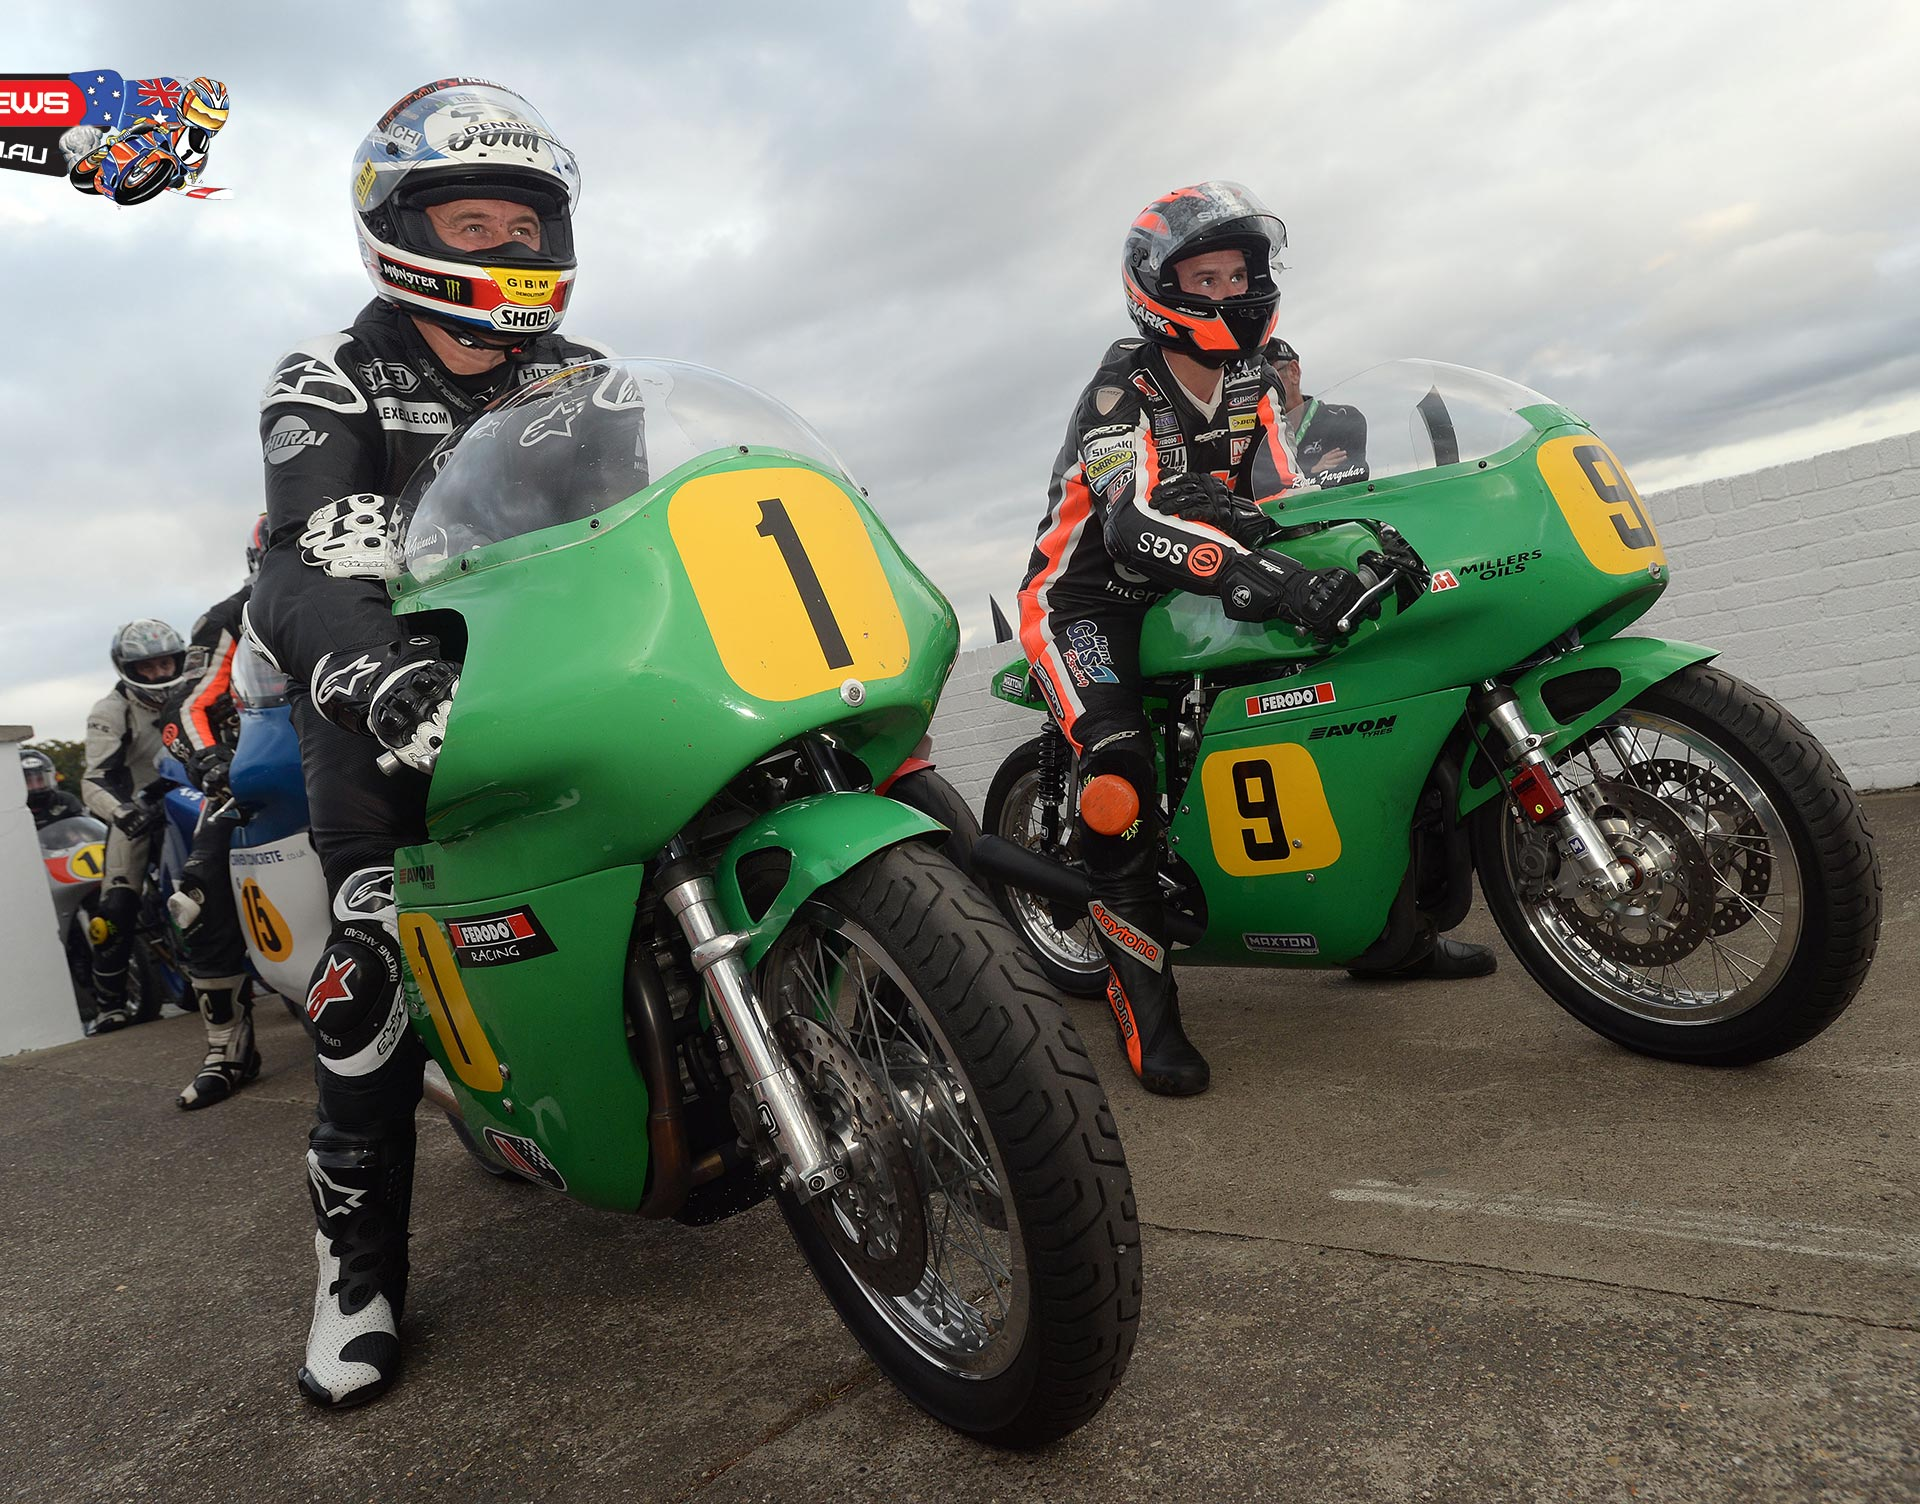 John McGuinness and Ryan Farquhar about to start a qualifying session at Classic TT 2014 on the Winfield Patons. Credit Stephen Davison Pacemaker Press Intl